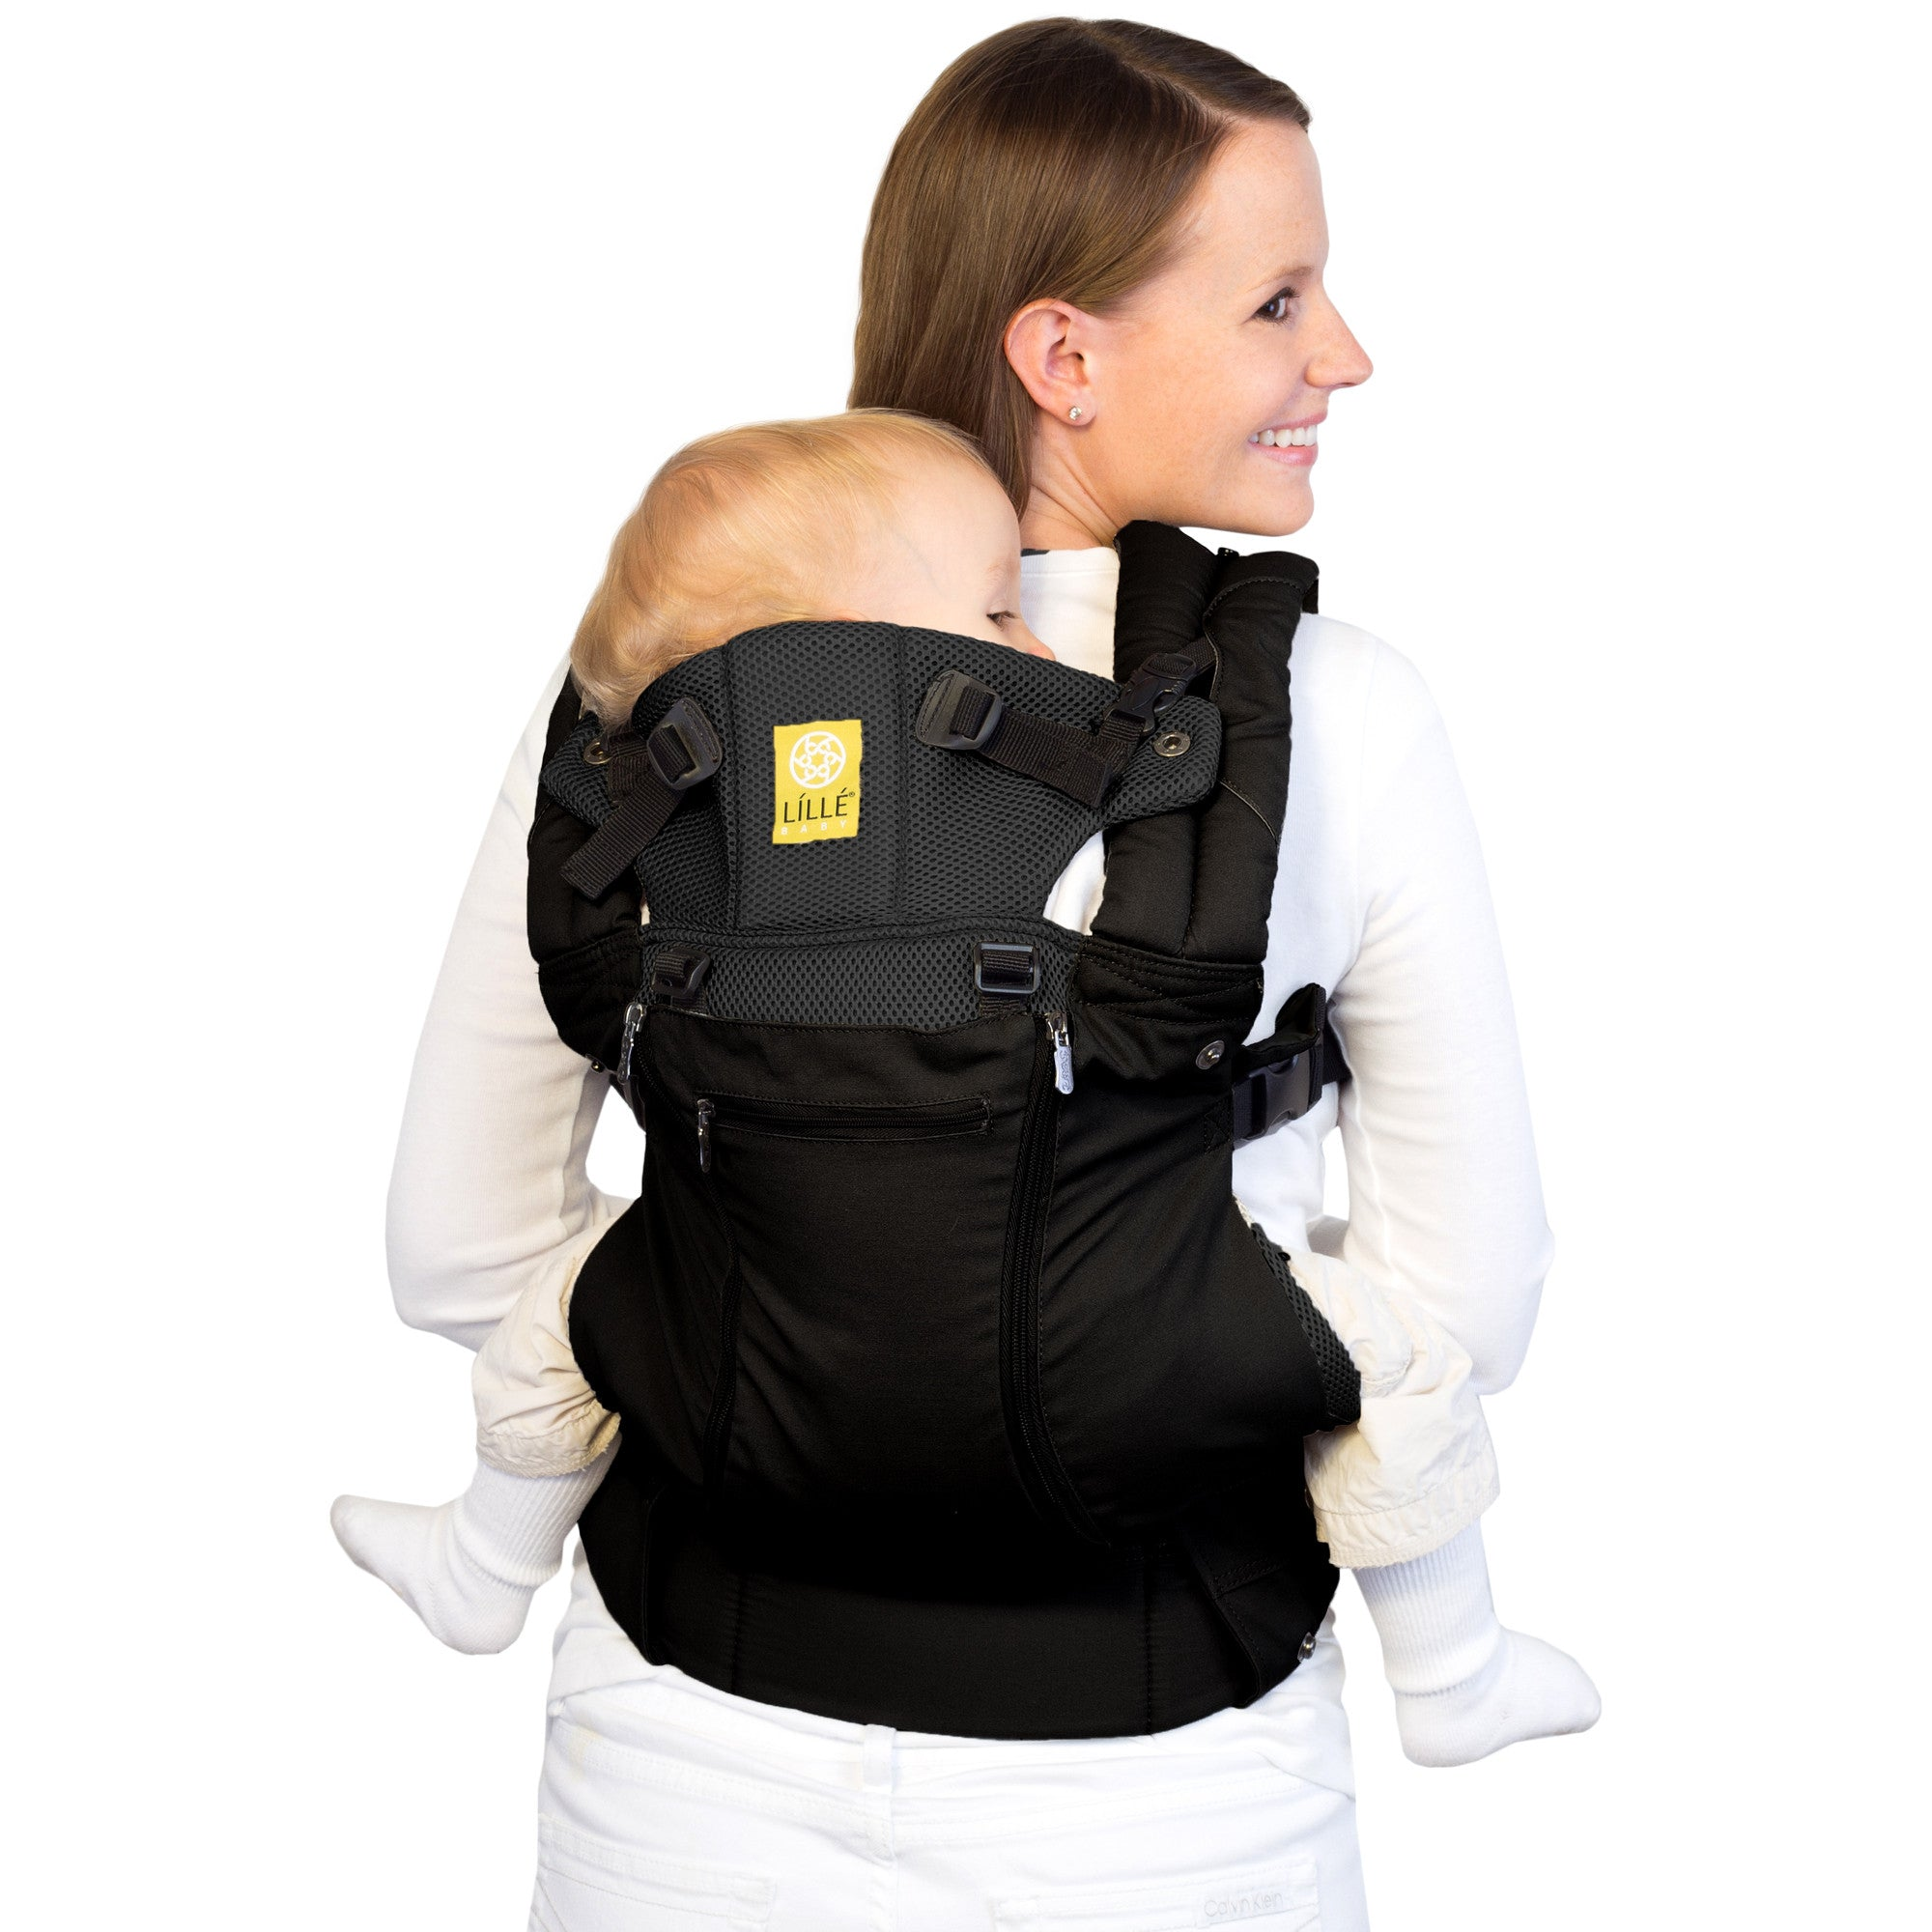 ee56b4c9934 Lillebaby Complete All Seasons Baby Carrier - Black - Plushbottom